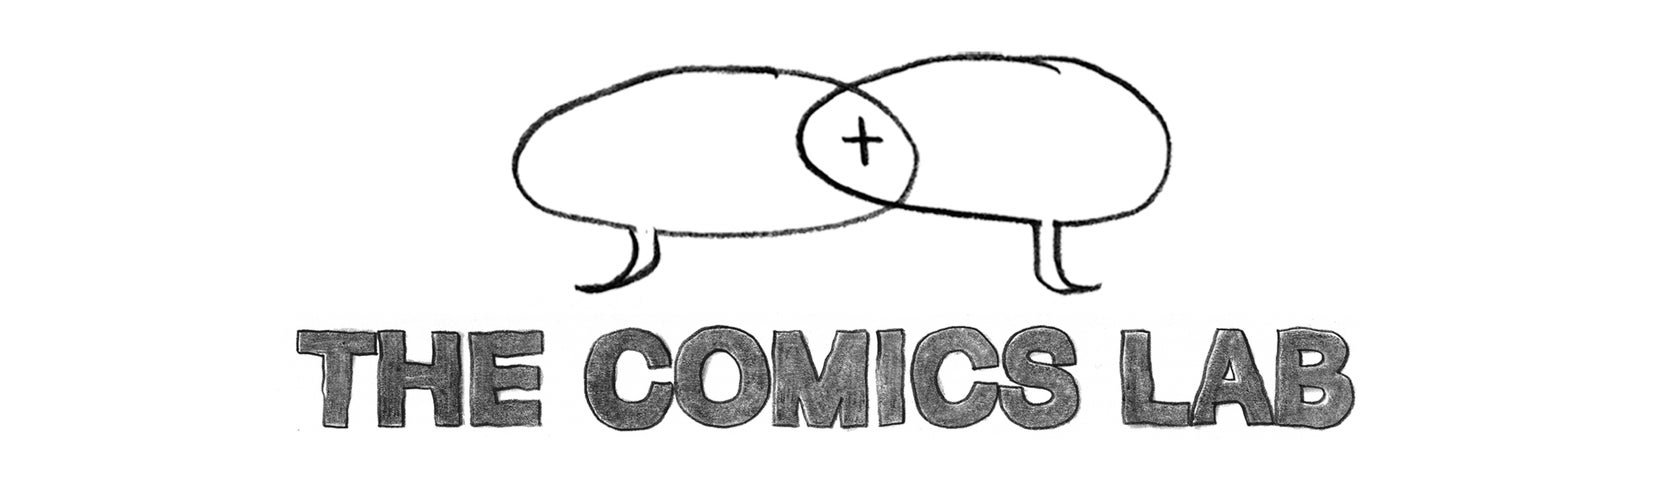 The Comics Lab